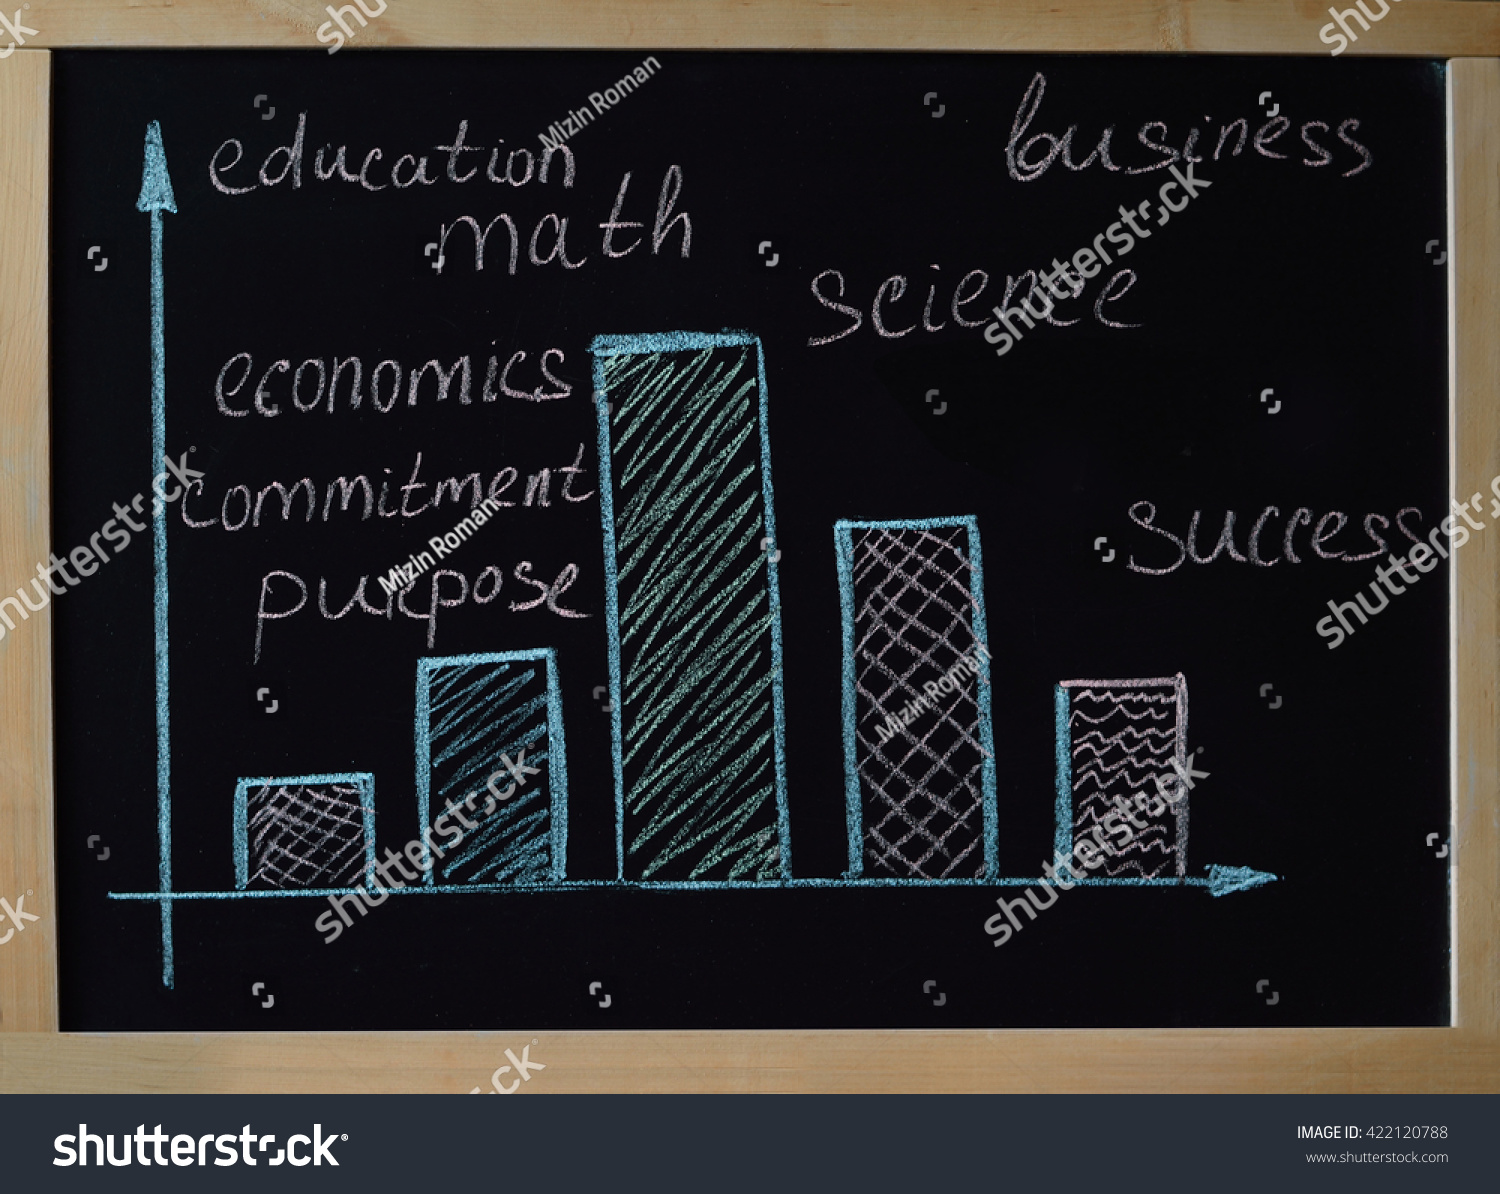 Plans diagrams mathematical equation two unknowns stock photo harts plans diagrams mathematical equation with two unknowns and question mark words ccuart Images